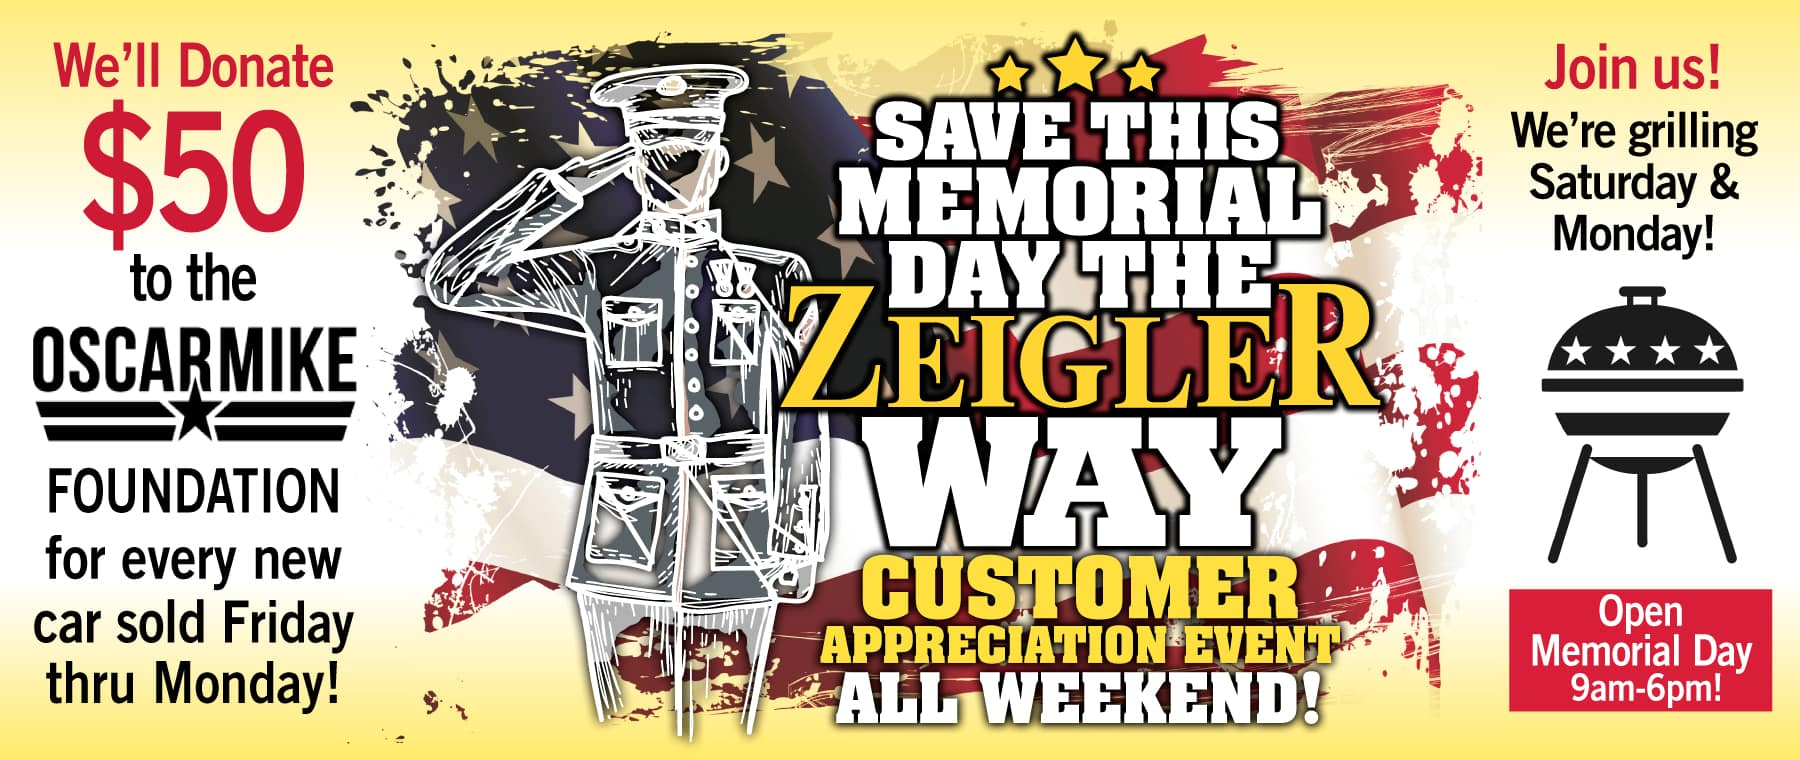 Zeigler Customer Appreciation